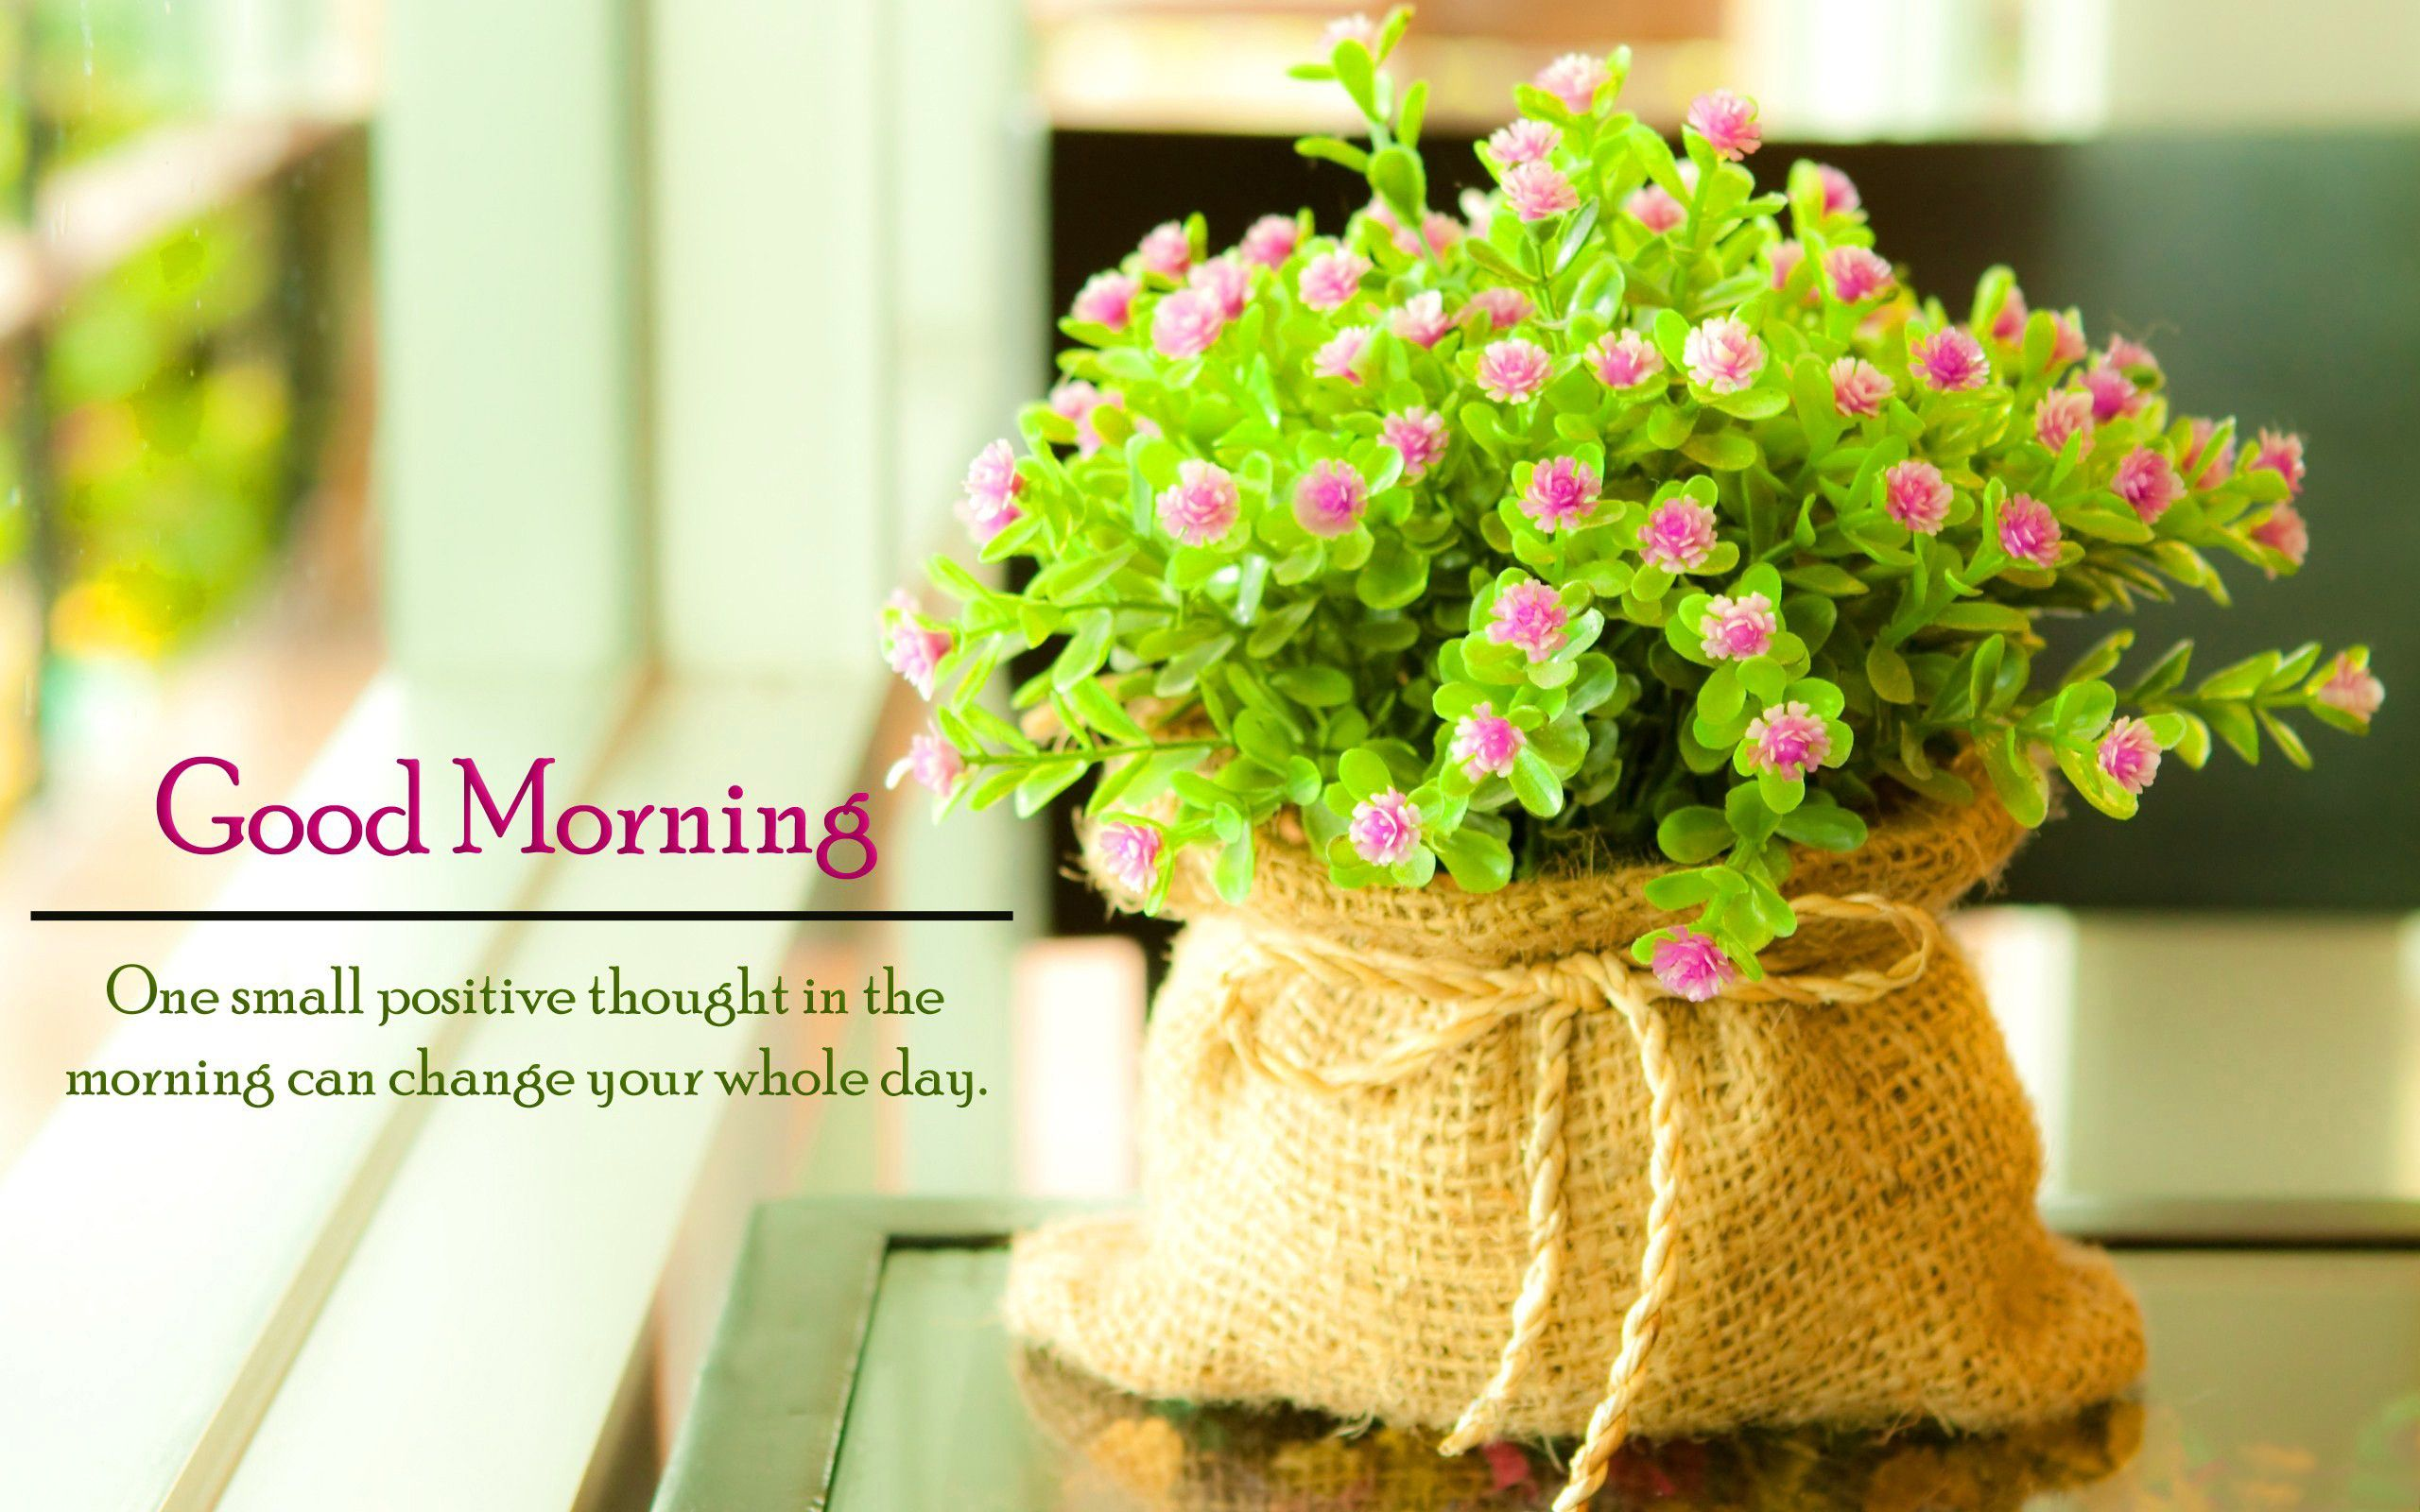 Good Morning Quotes Flowers hd Flower wallpaper